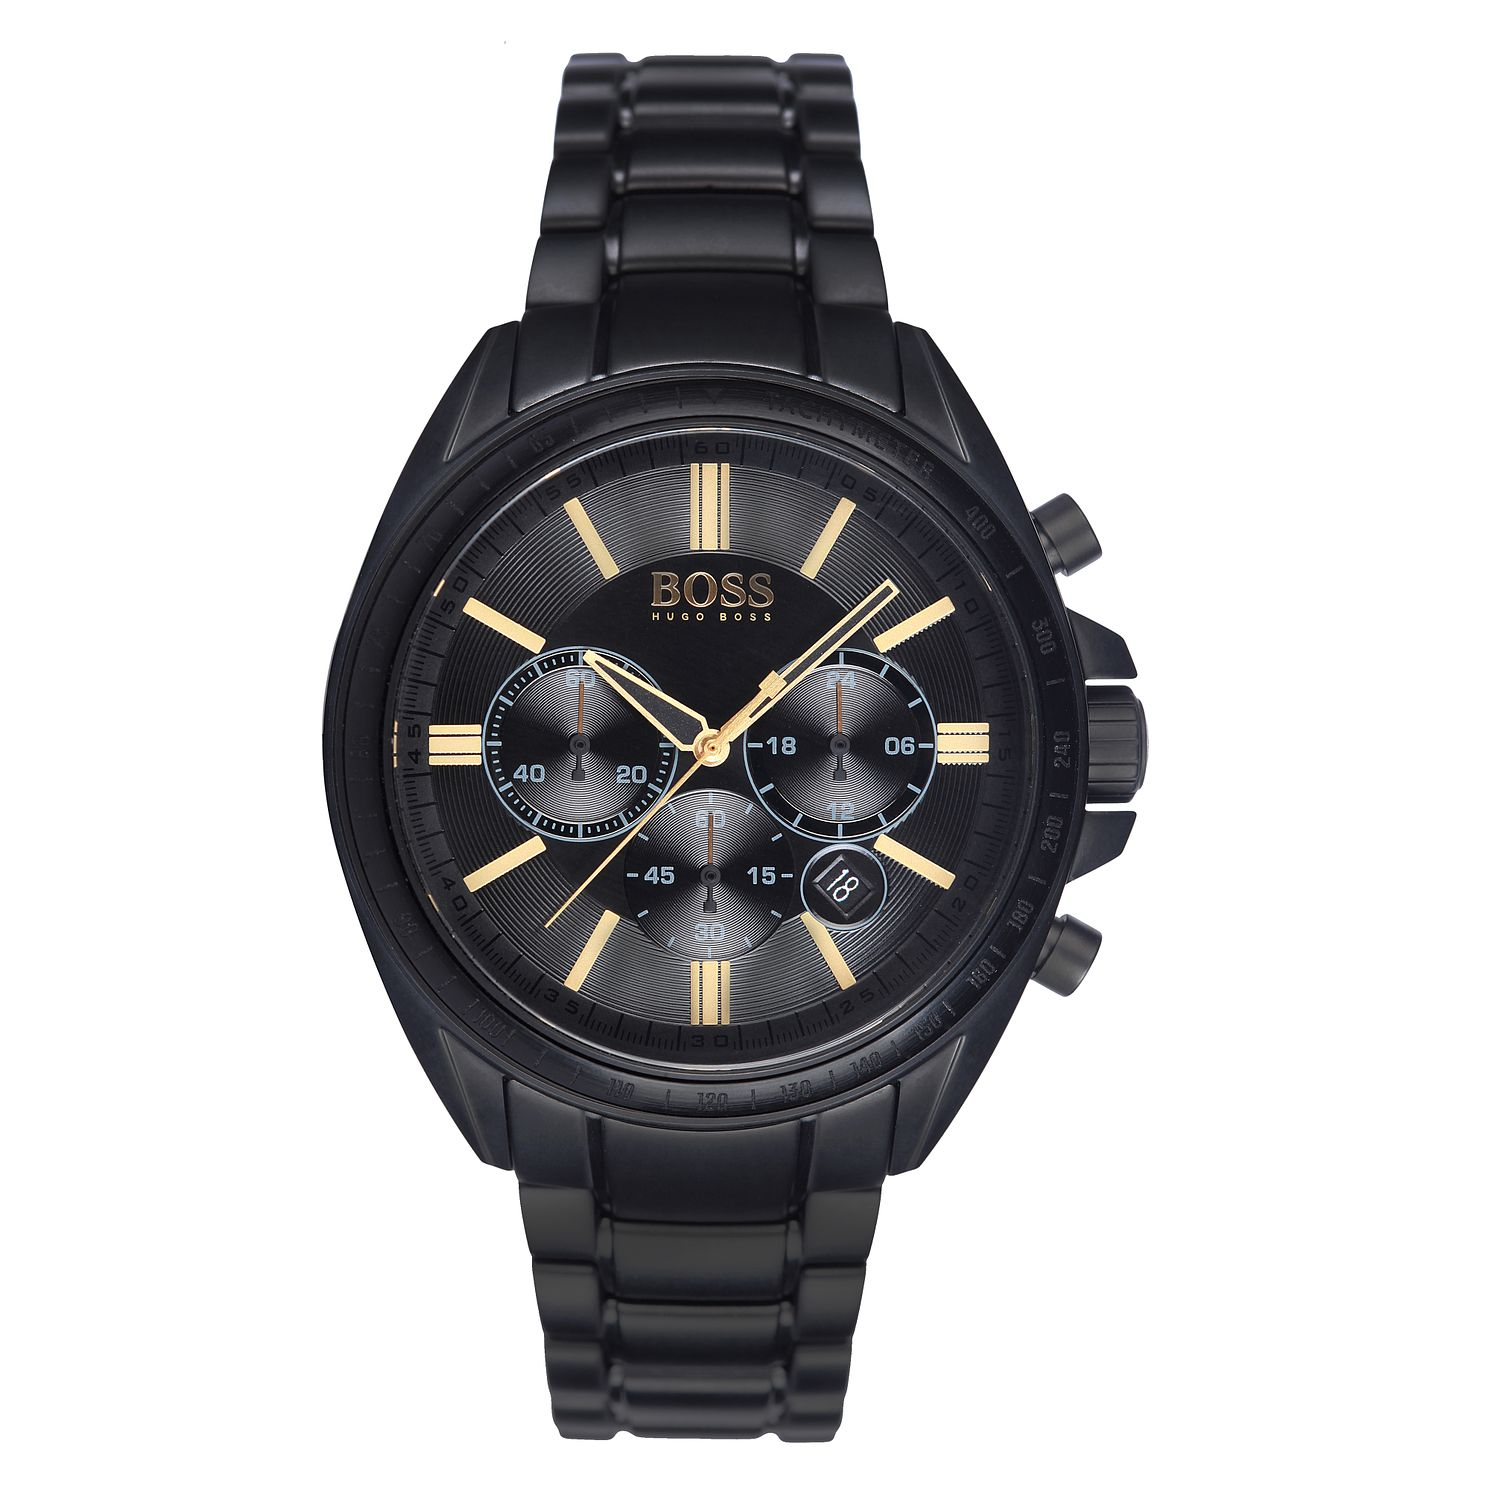 BOSS Driver Men's Black Ion-Plated Bracelet Watch - Product number 5447585